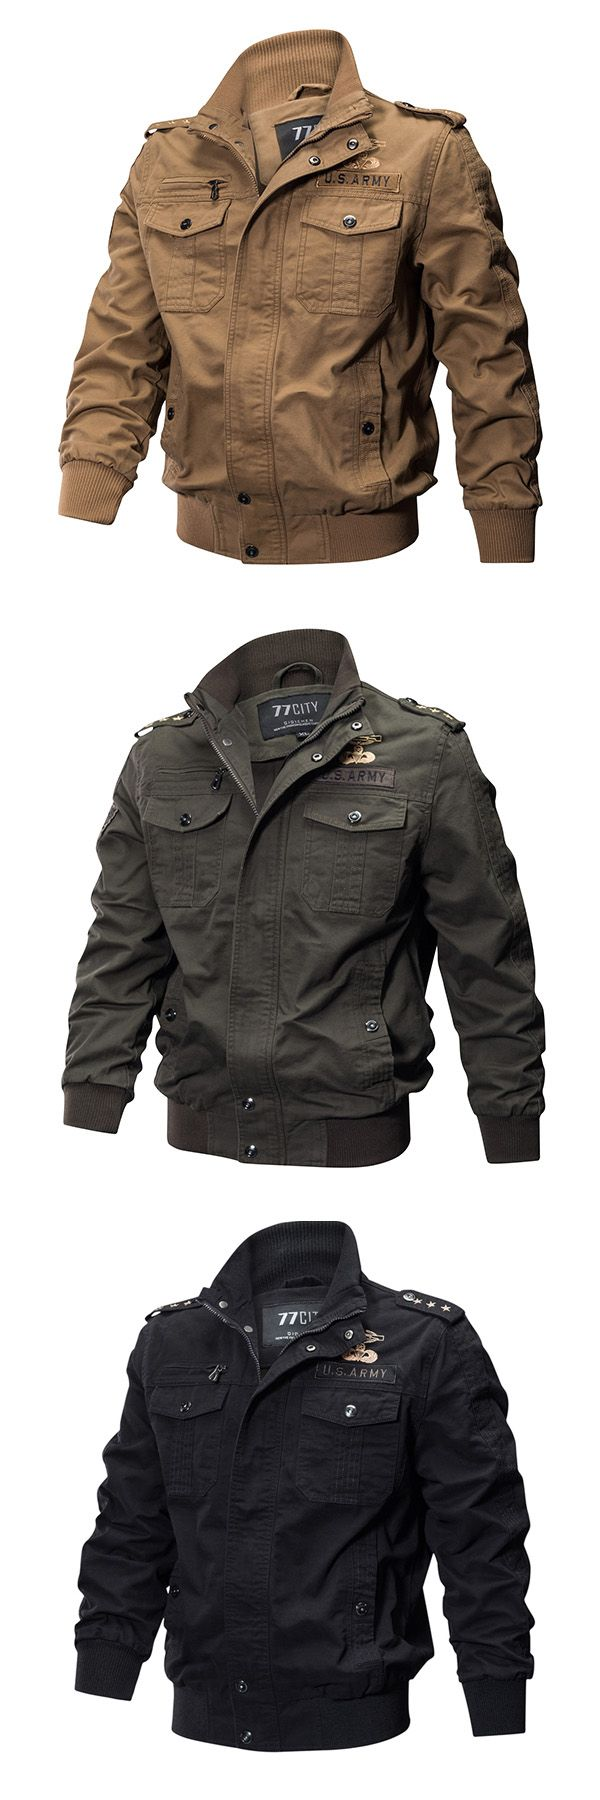 Here's Stylish Military Jackets for You. Max Size: XXXXL. Suits you perfectly.